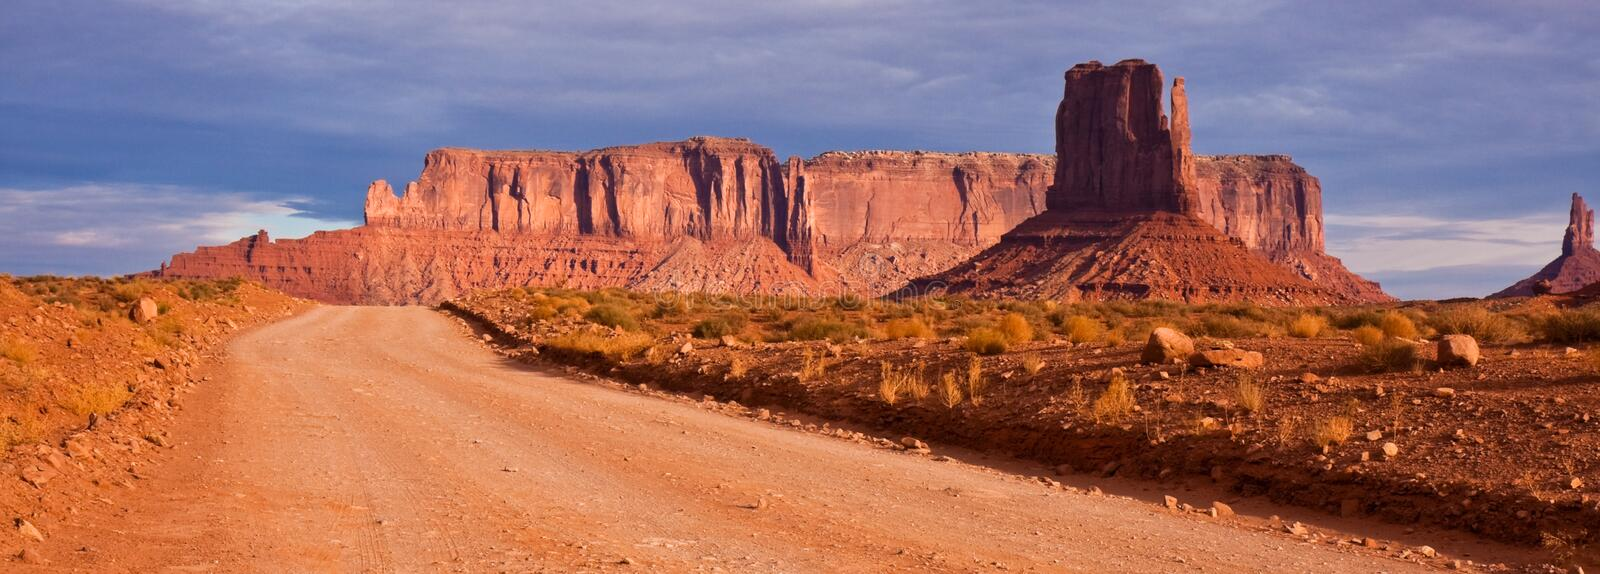 Download Monument Valley Road Panorama Stock Image - Image: 12115775